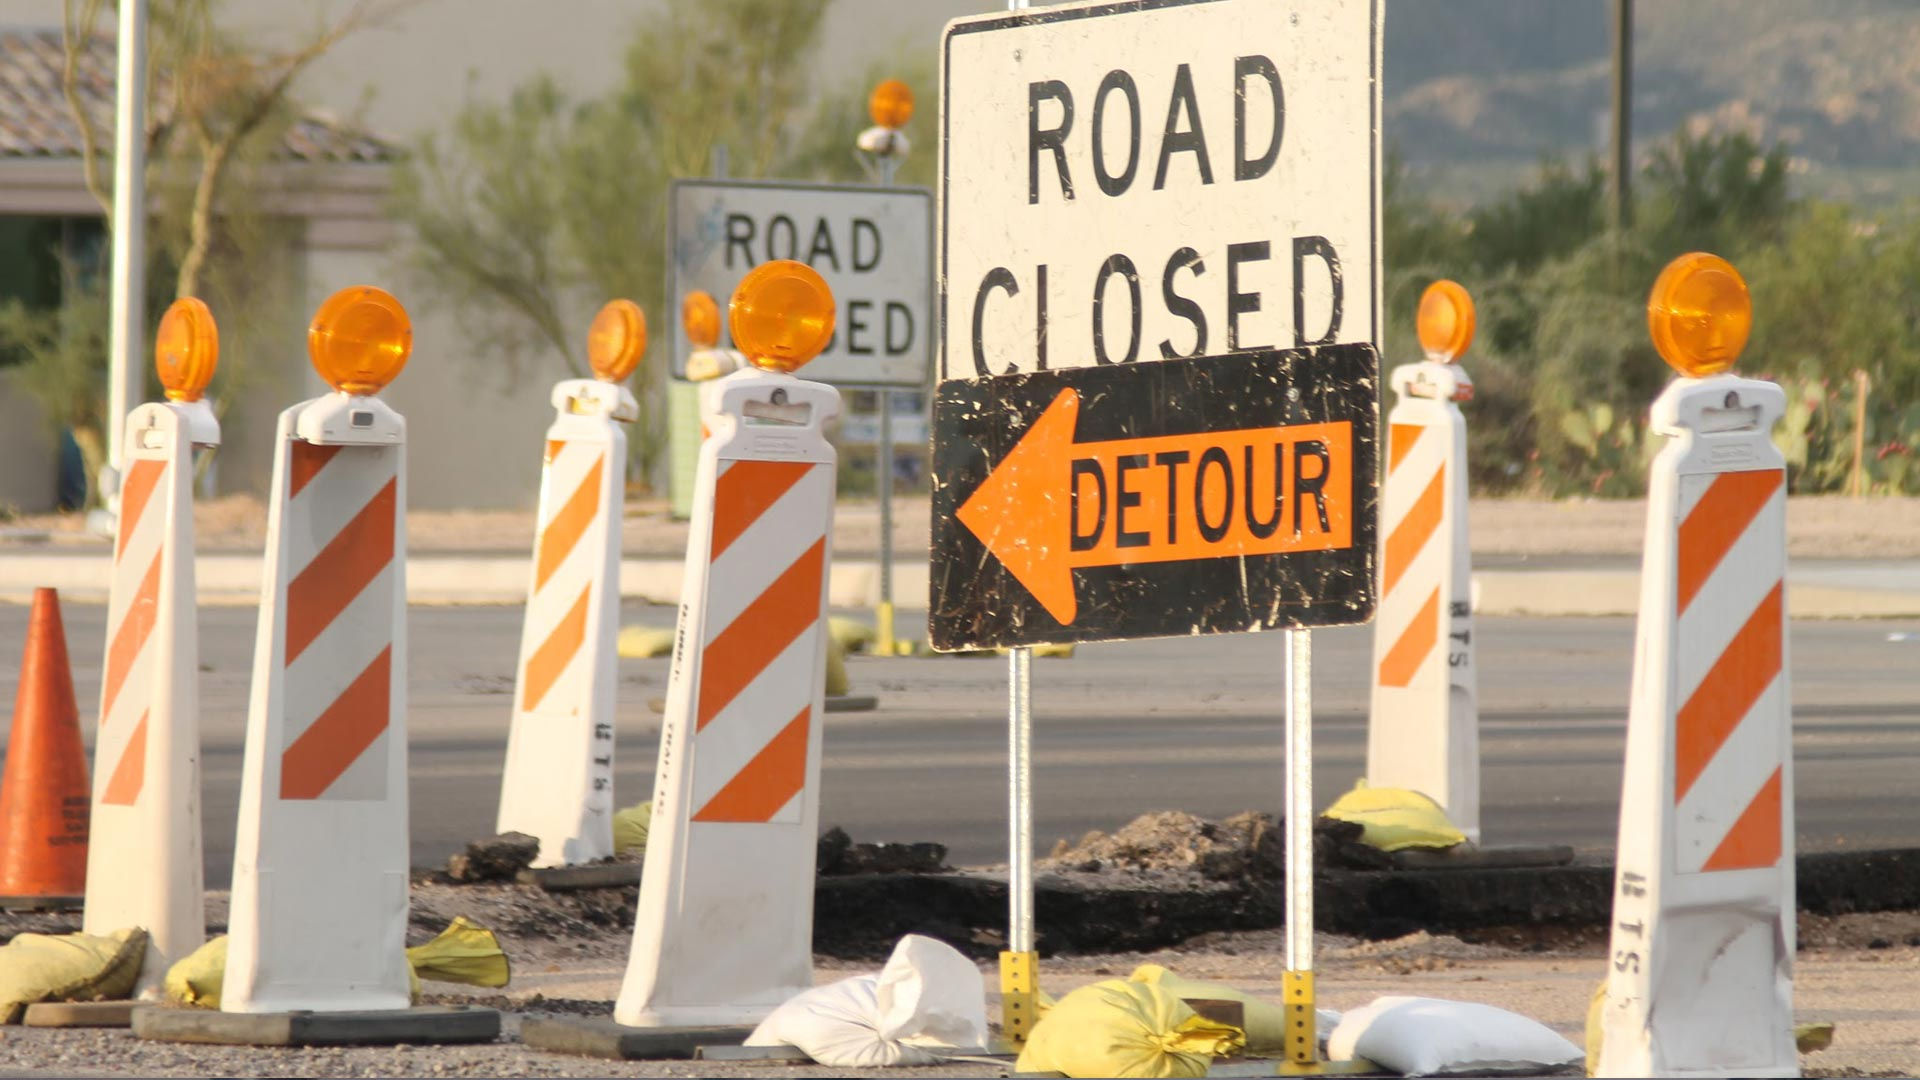 Detour signs at a road construction project.